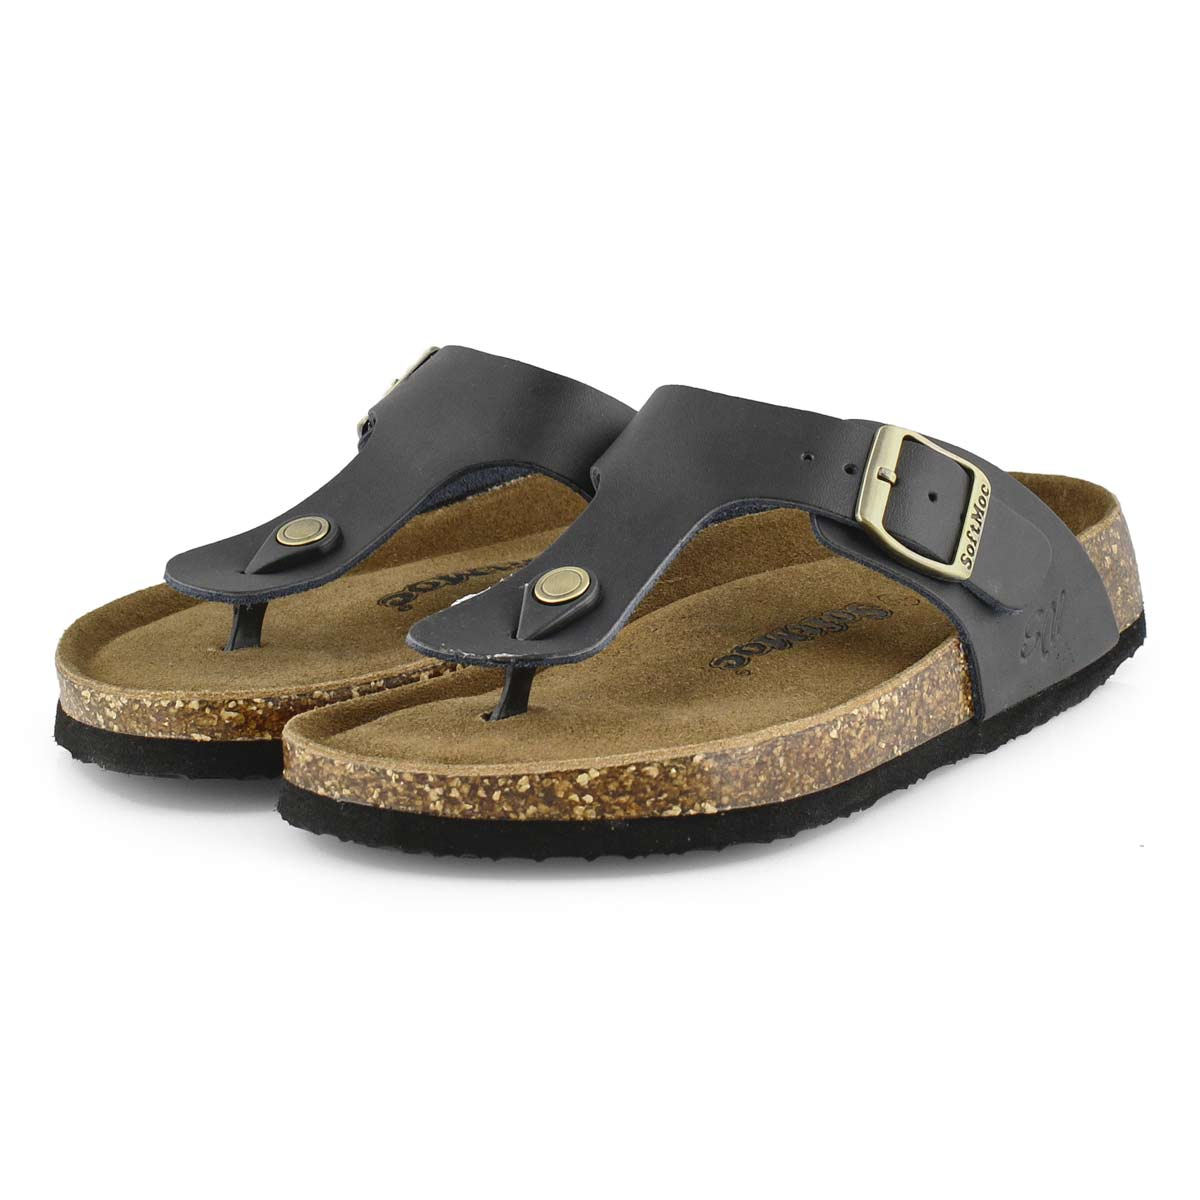 Lds Angy 5 blk memory foam thong sandal